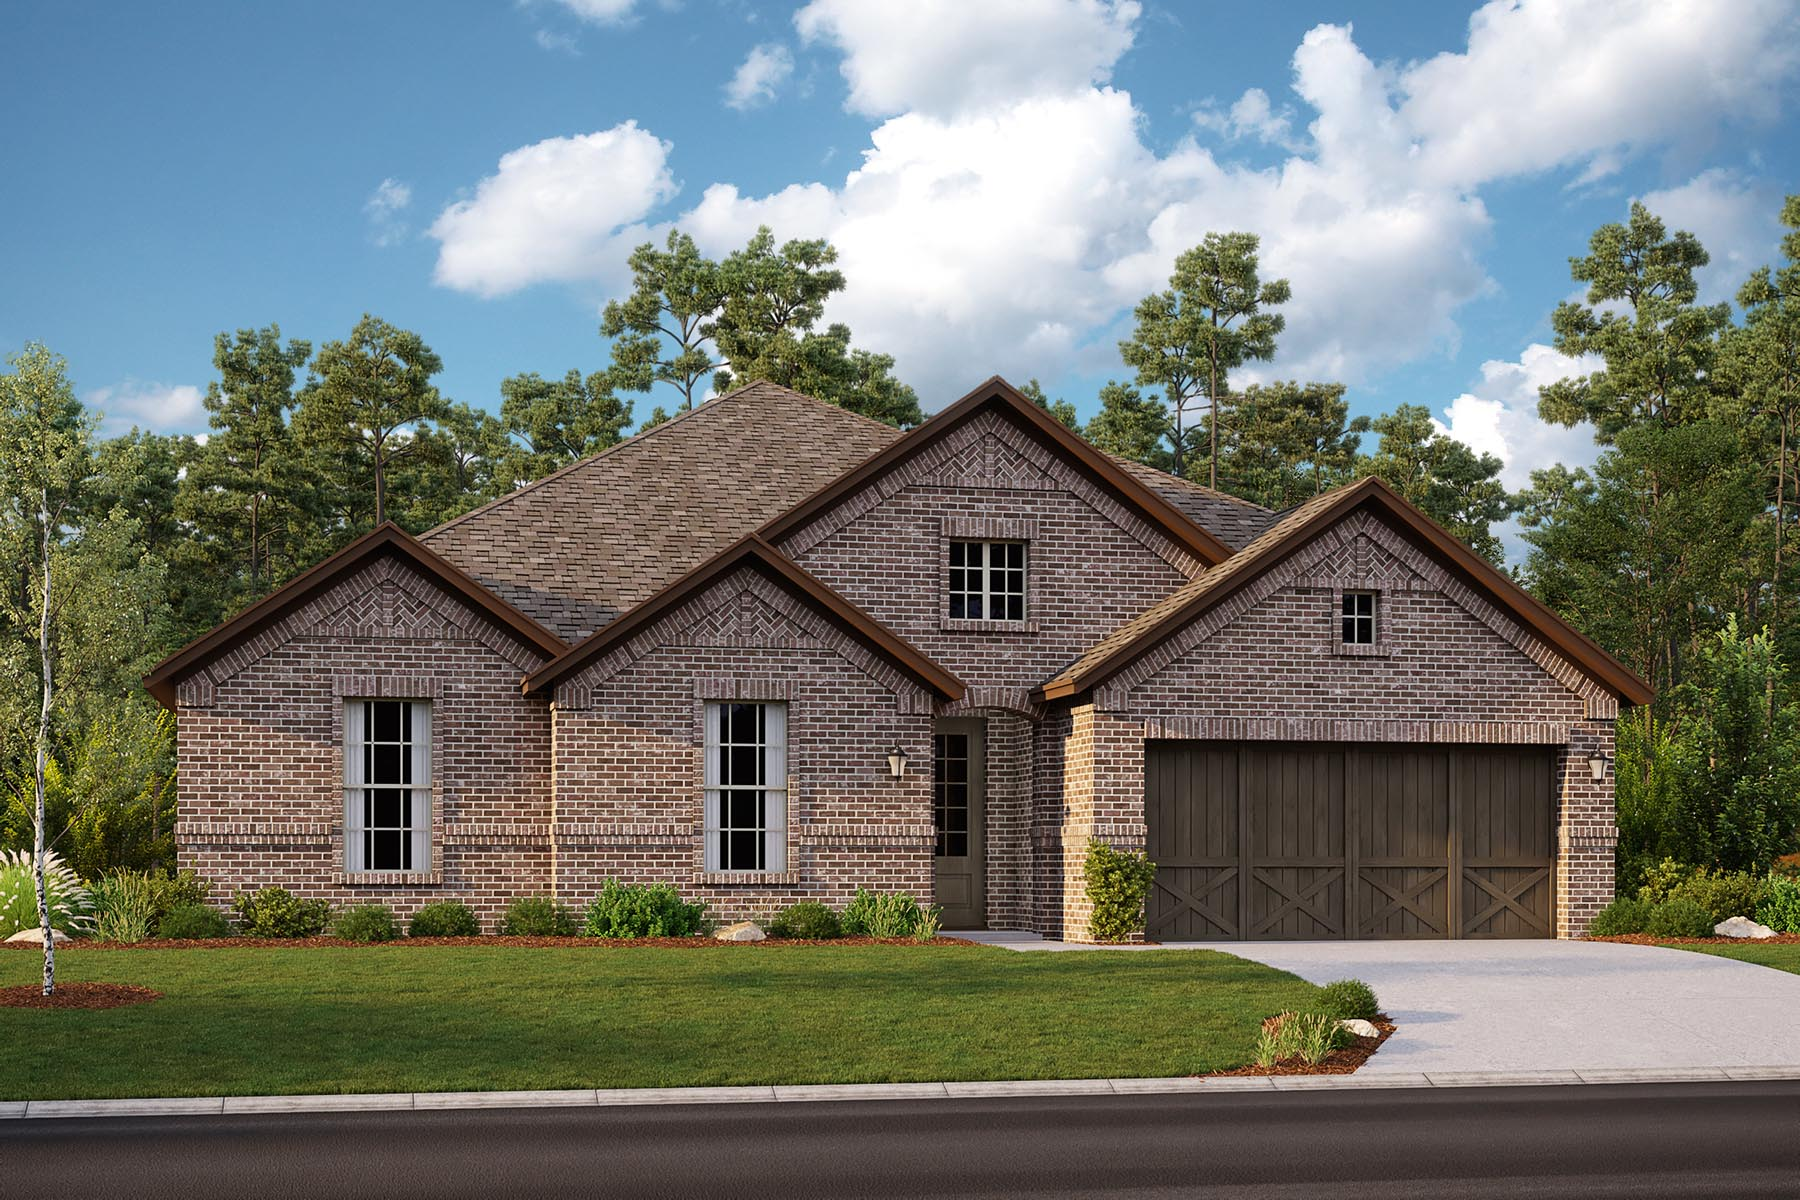 Rockport II Plan DAL_Rockport_B_ElevationExt_1800x1200 at Villages of Hurricane Creek in Anna Texas by Mattamy Homes